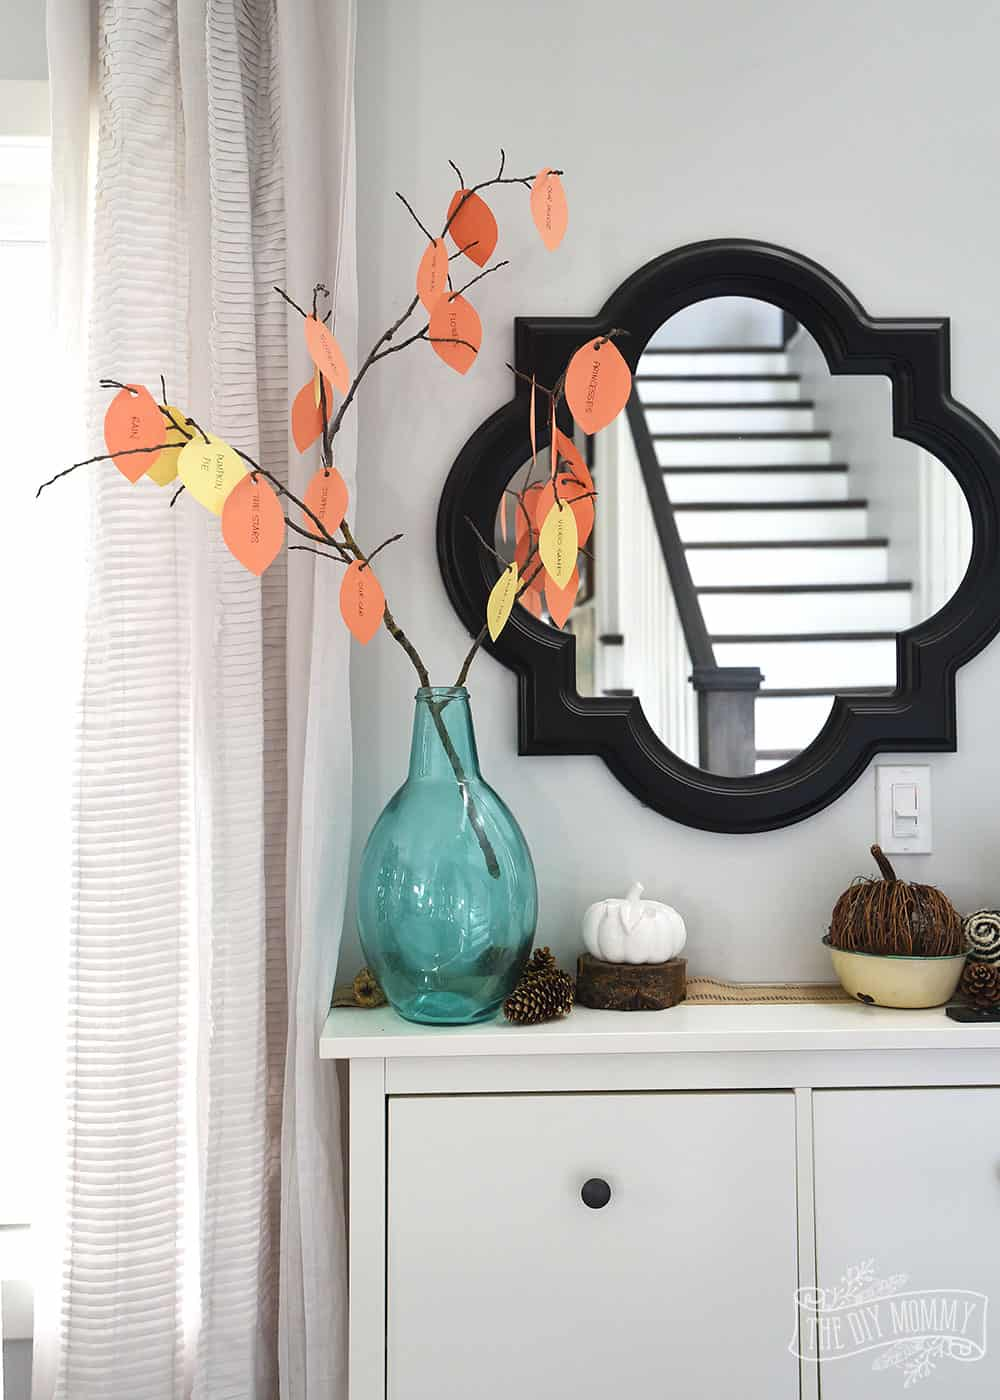 Diy thankful tree